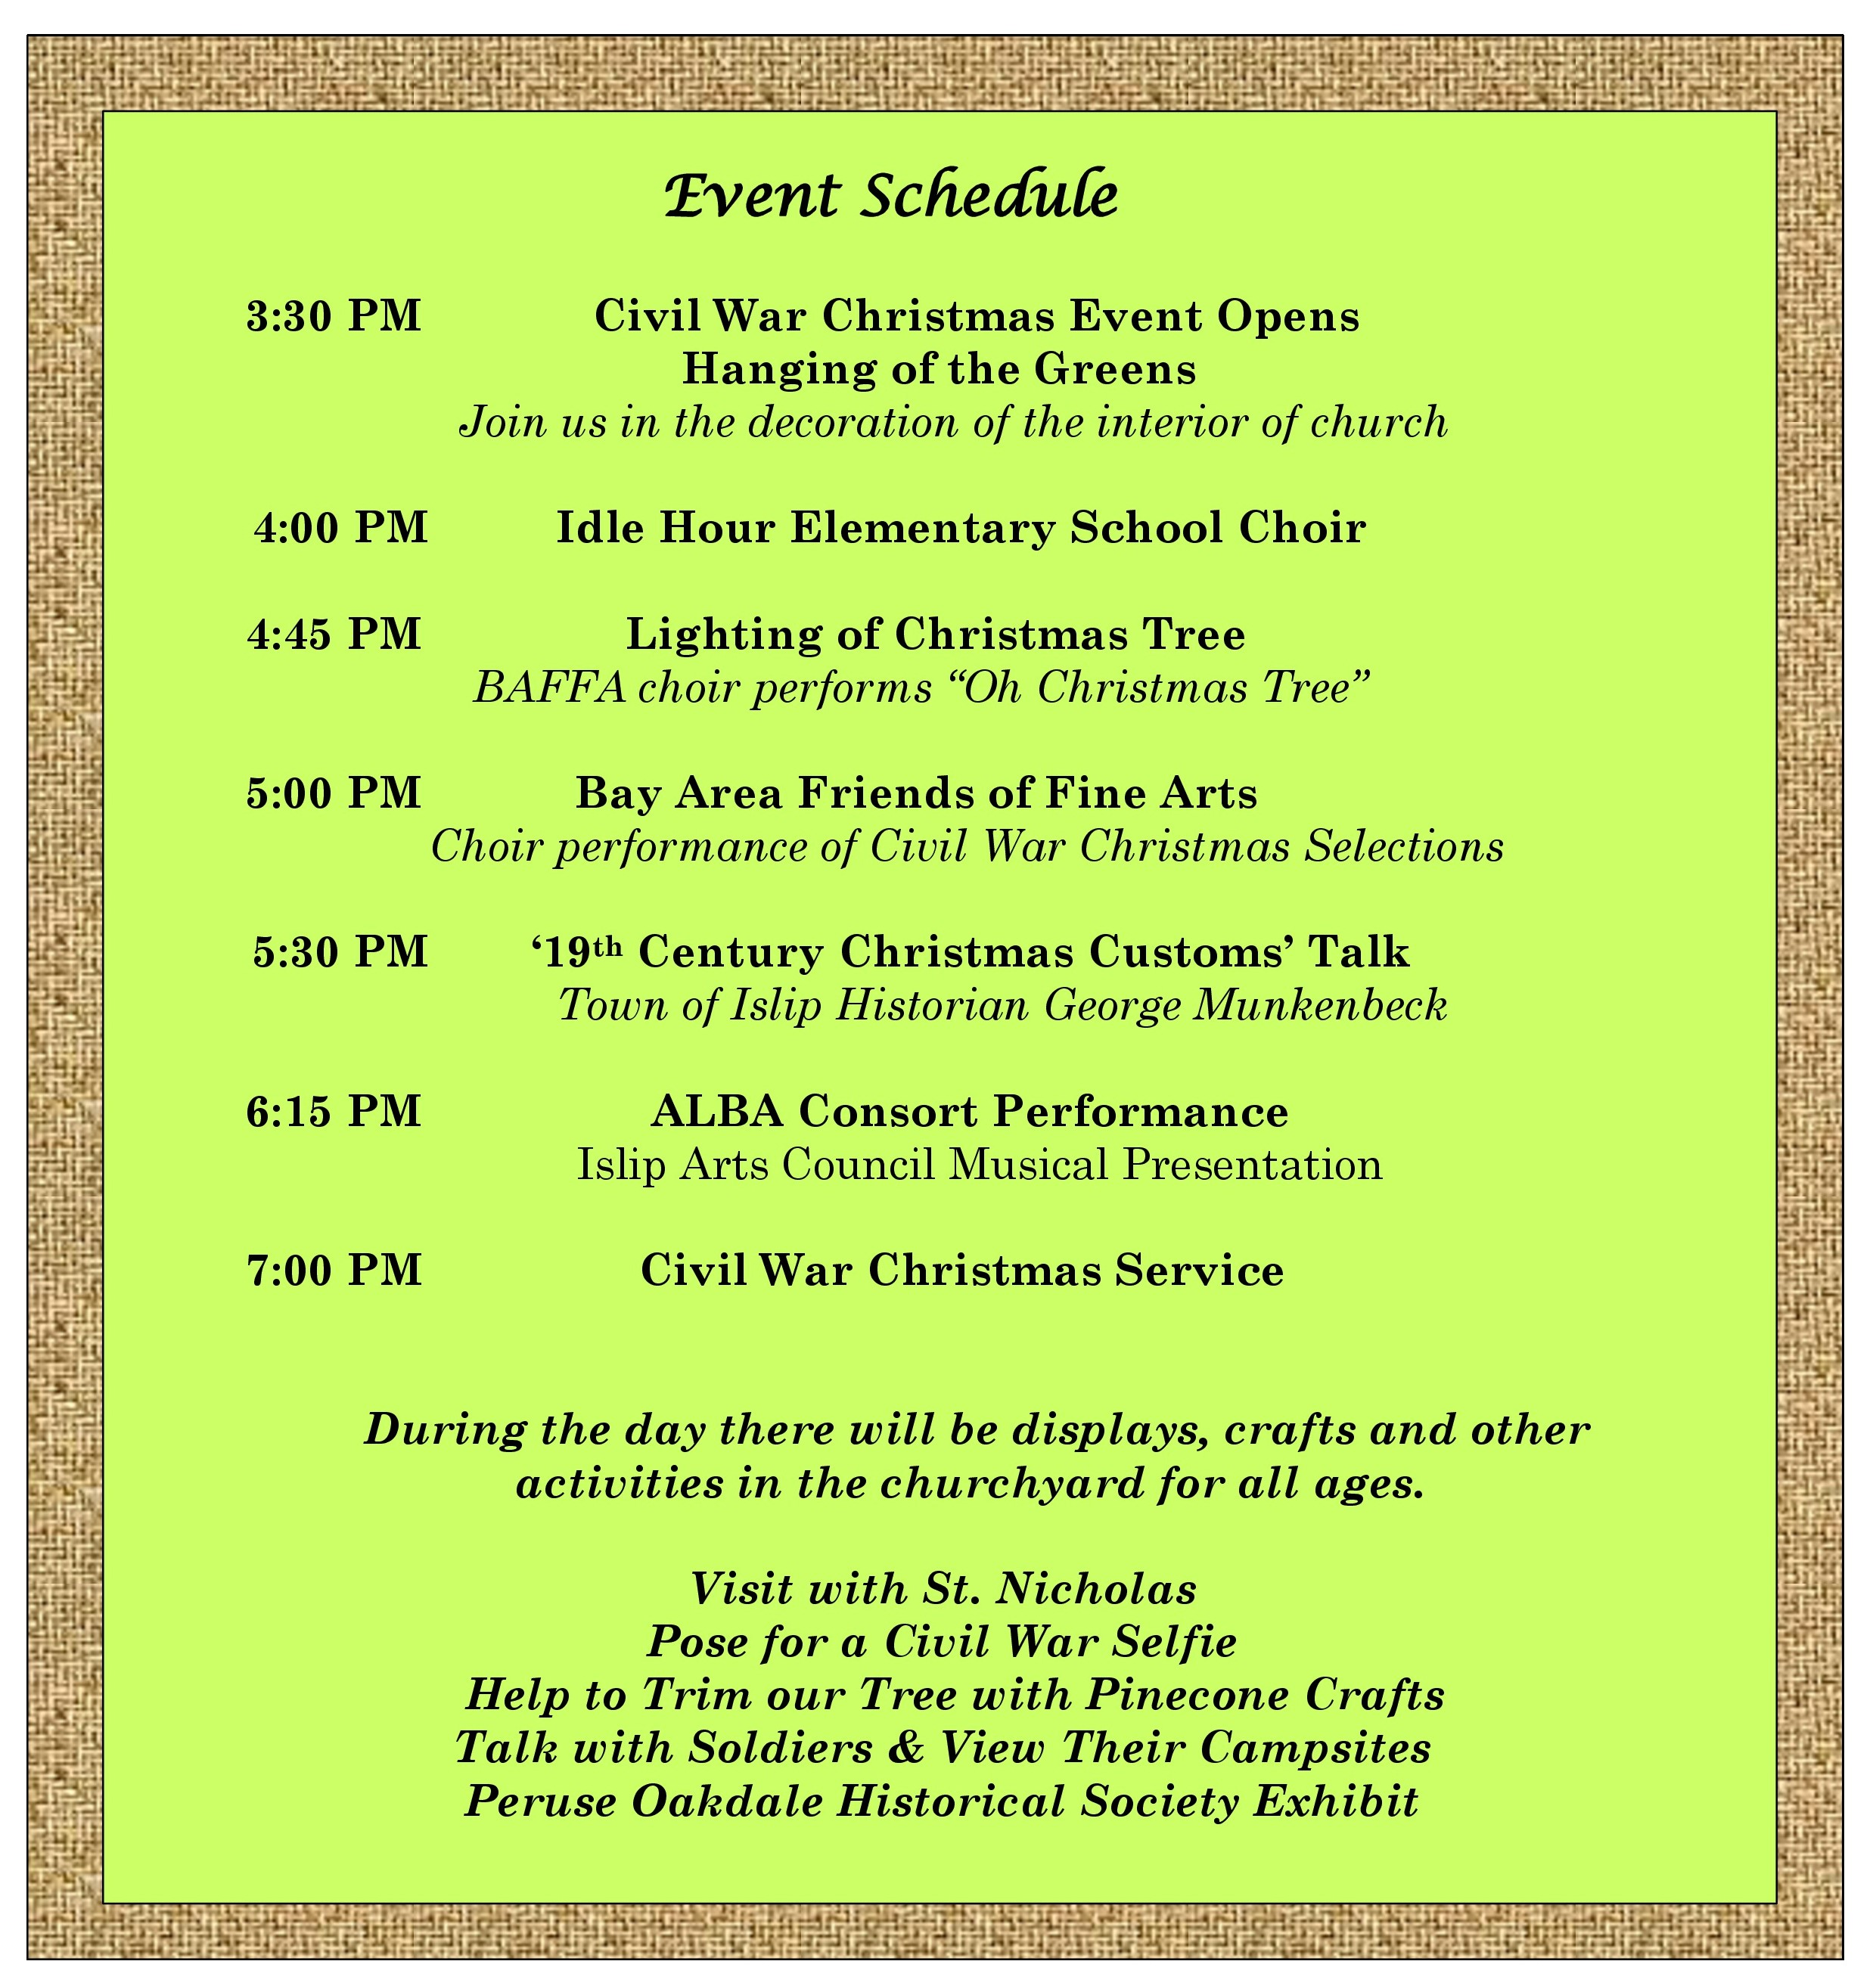 a rundown of the event schedule with the civil war events opening with a decoration of the church beginning at 3:30pm!